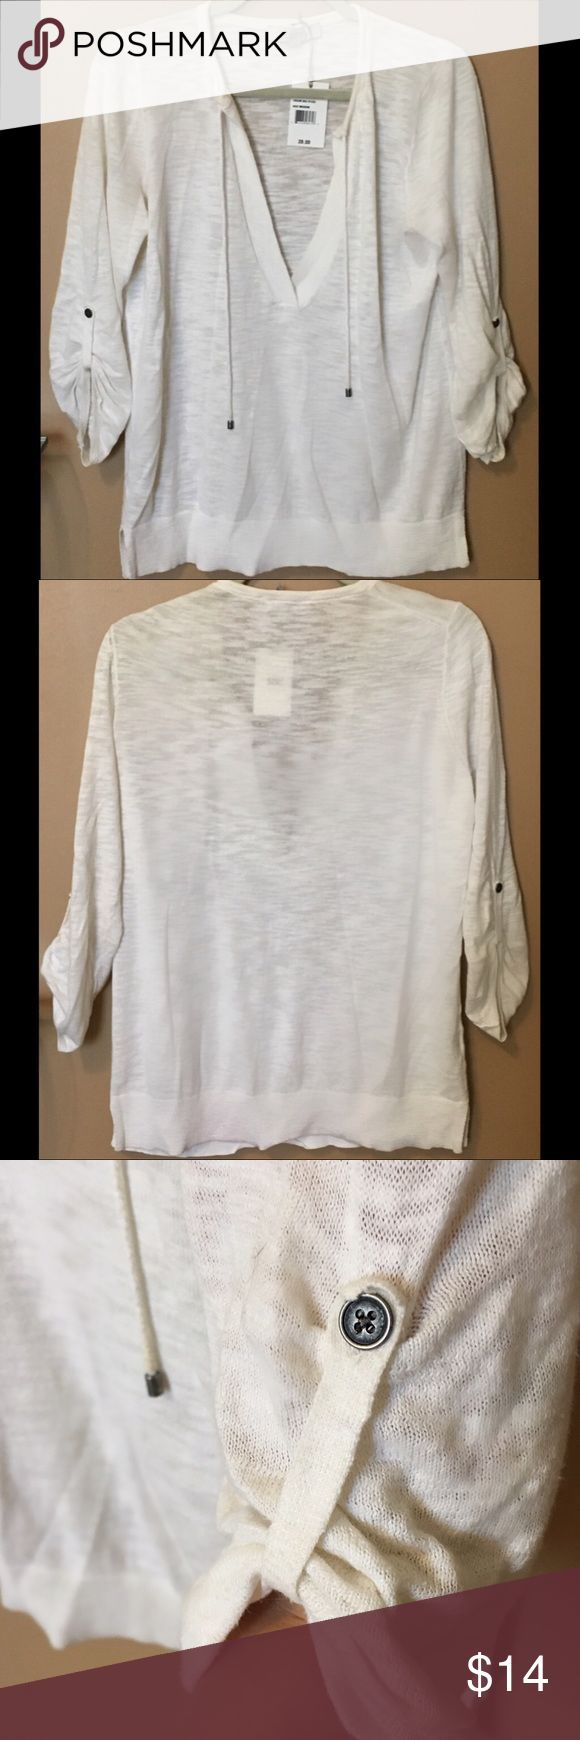 Ann Taylor Loft Pullover Sweater Shirt Ann Taylor Loft Pullover Sweater Shirt, Light weight. Draw string decor and button option to shorten sleeves. Brass hardware. NWT Tag says Large but fits like a loose S/M. If your body is a large it would work as a shirt- could pair with a tank or bralette Ann Taylor Tops Tees - Short Sleeve